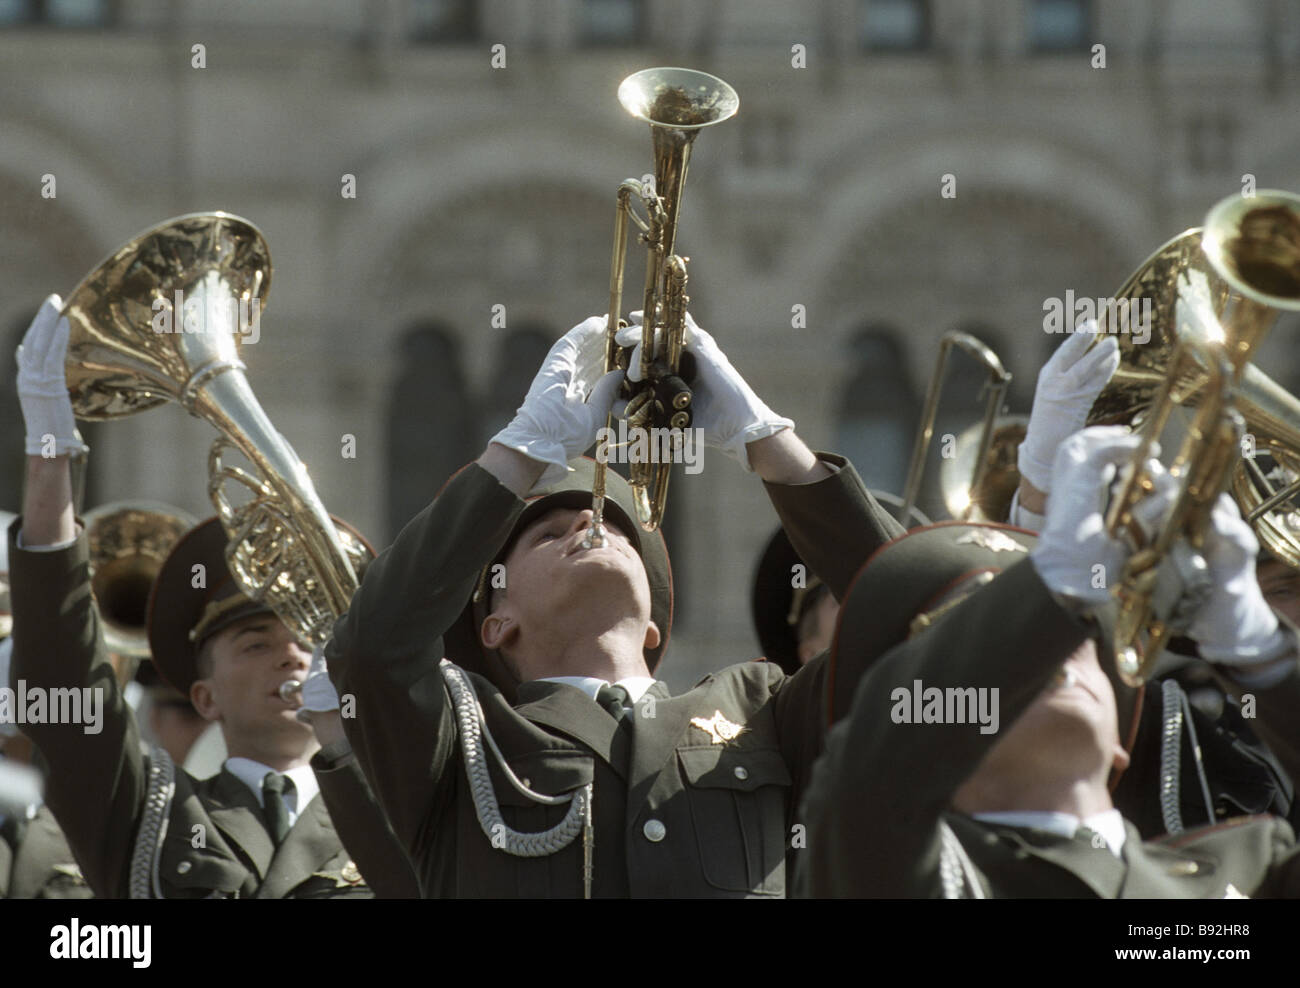 Platz concert in Red Square during the VE Day military parade marking the 58th anniversary of WWII - Stock Image